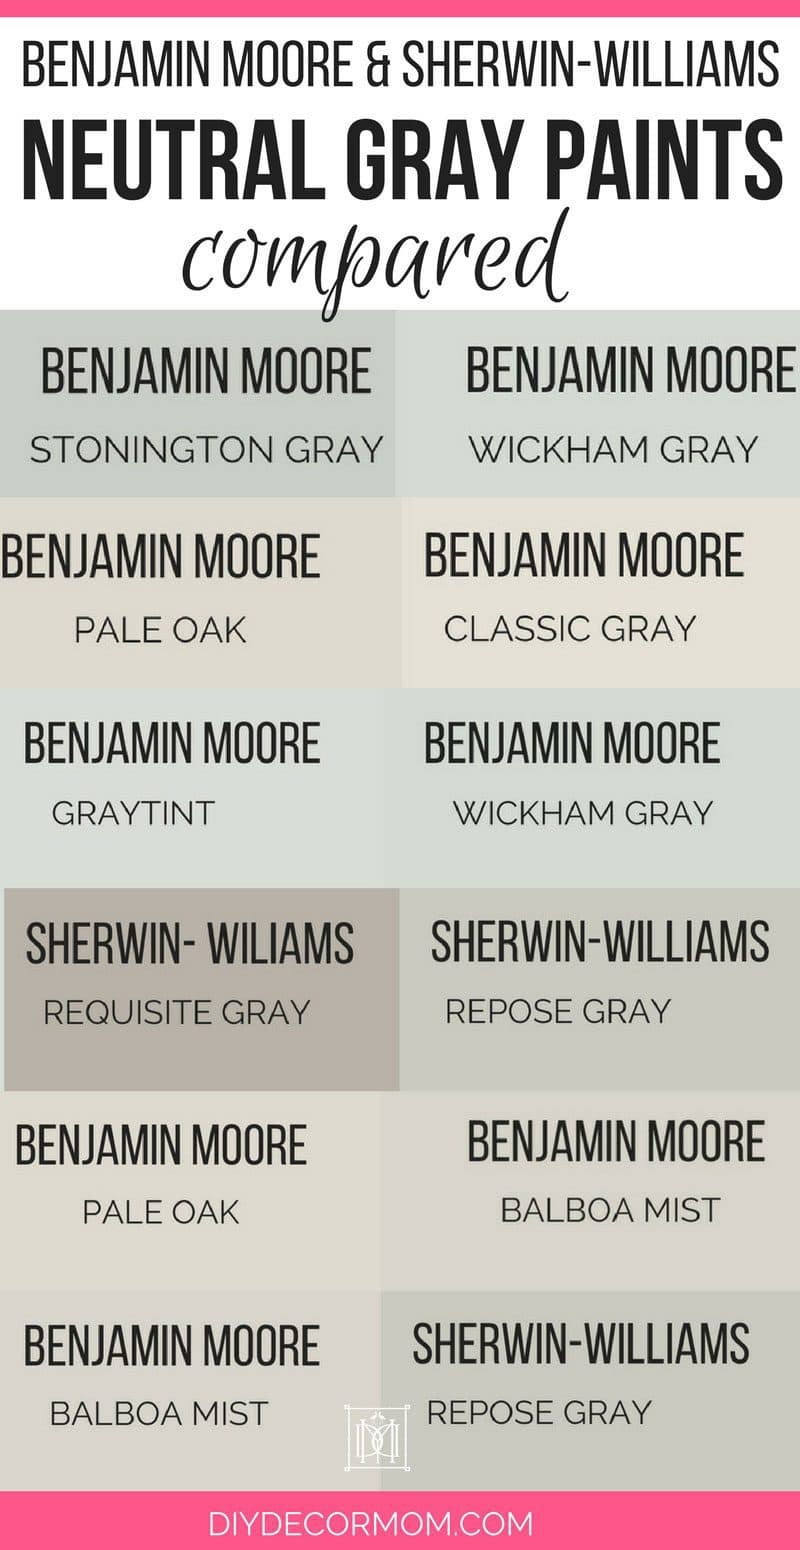 Comparison Of Benjamin Moore And Sherwin Williams Light Gray Paint Colors With Neutral Swatches